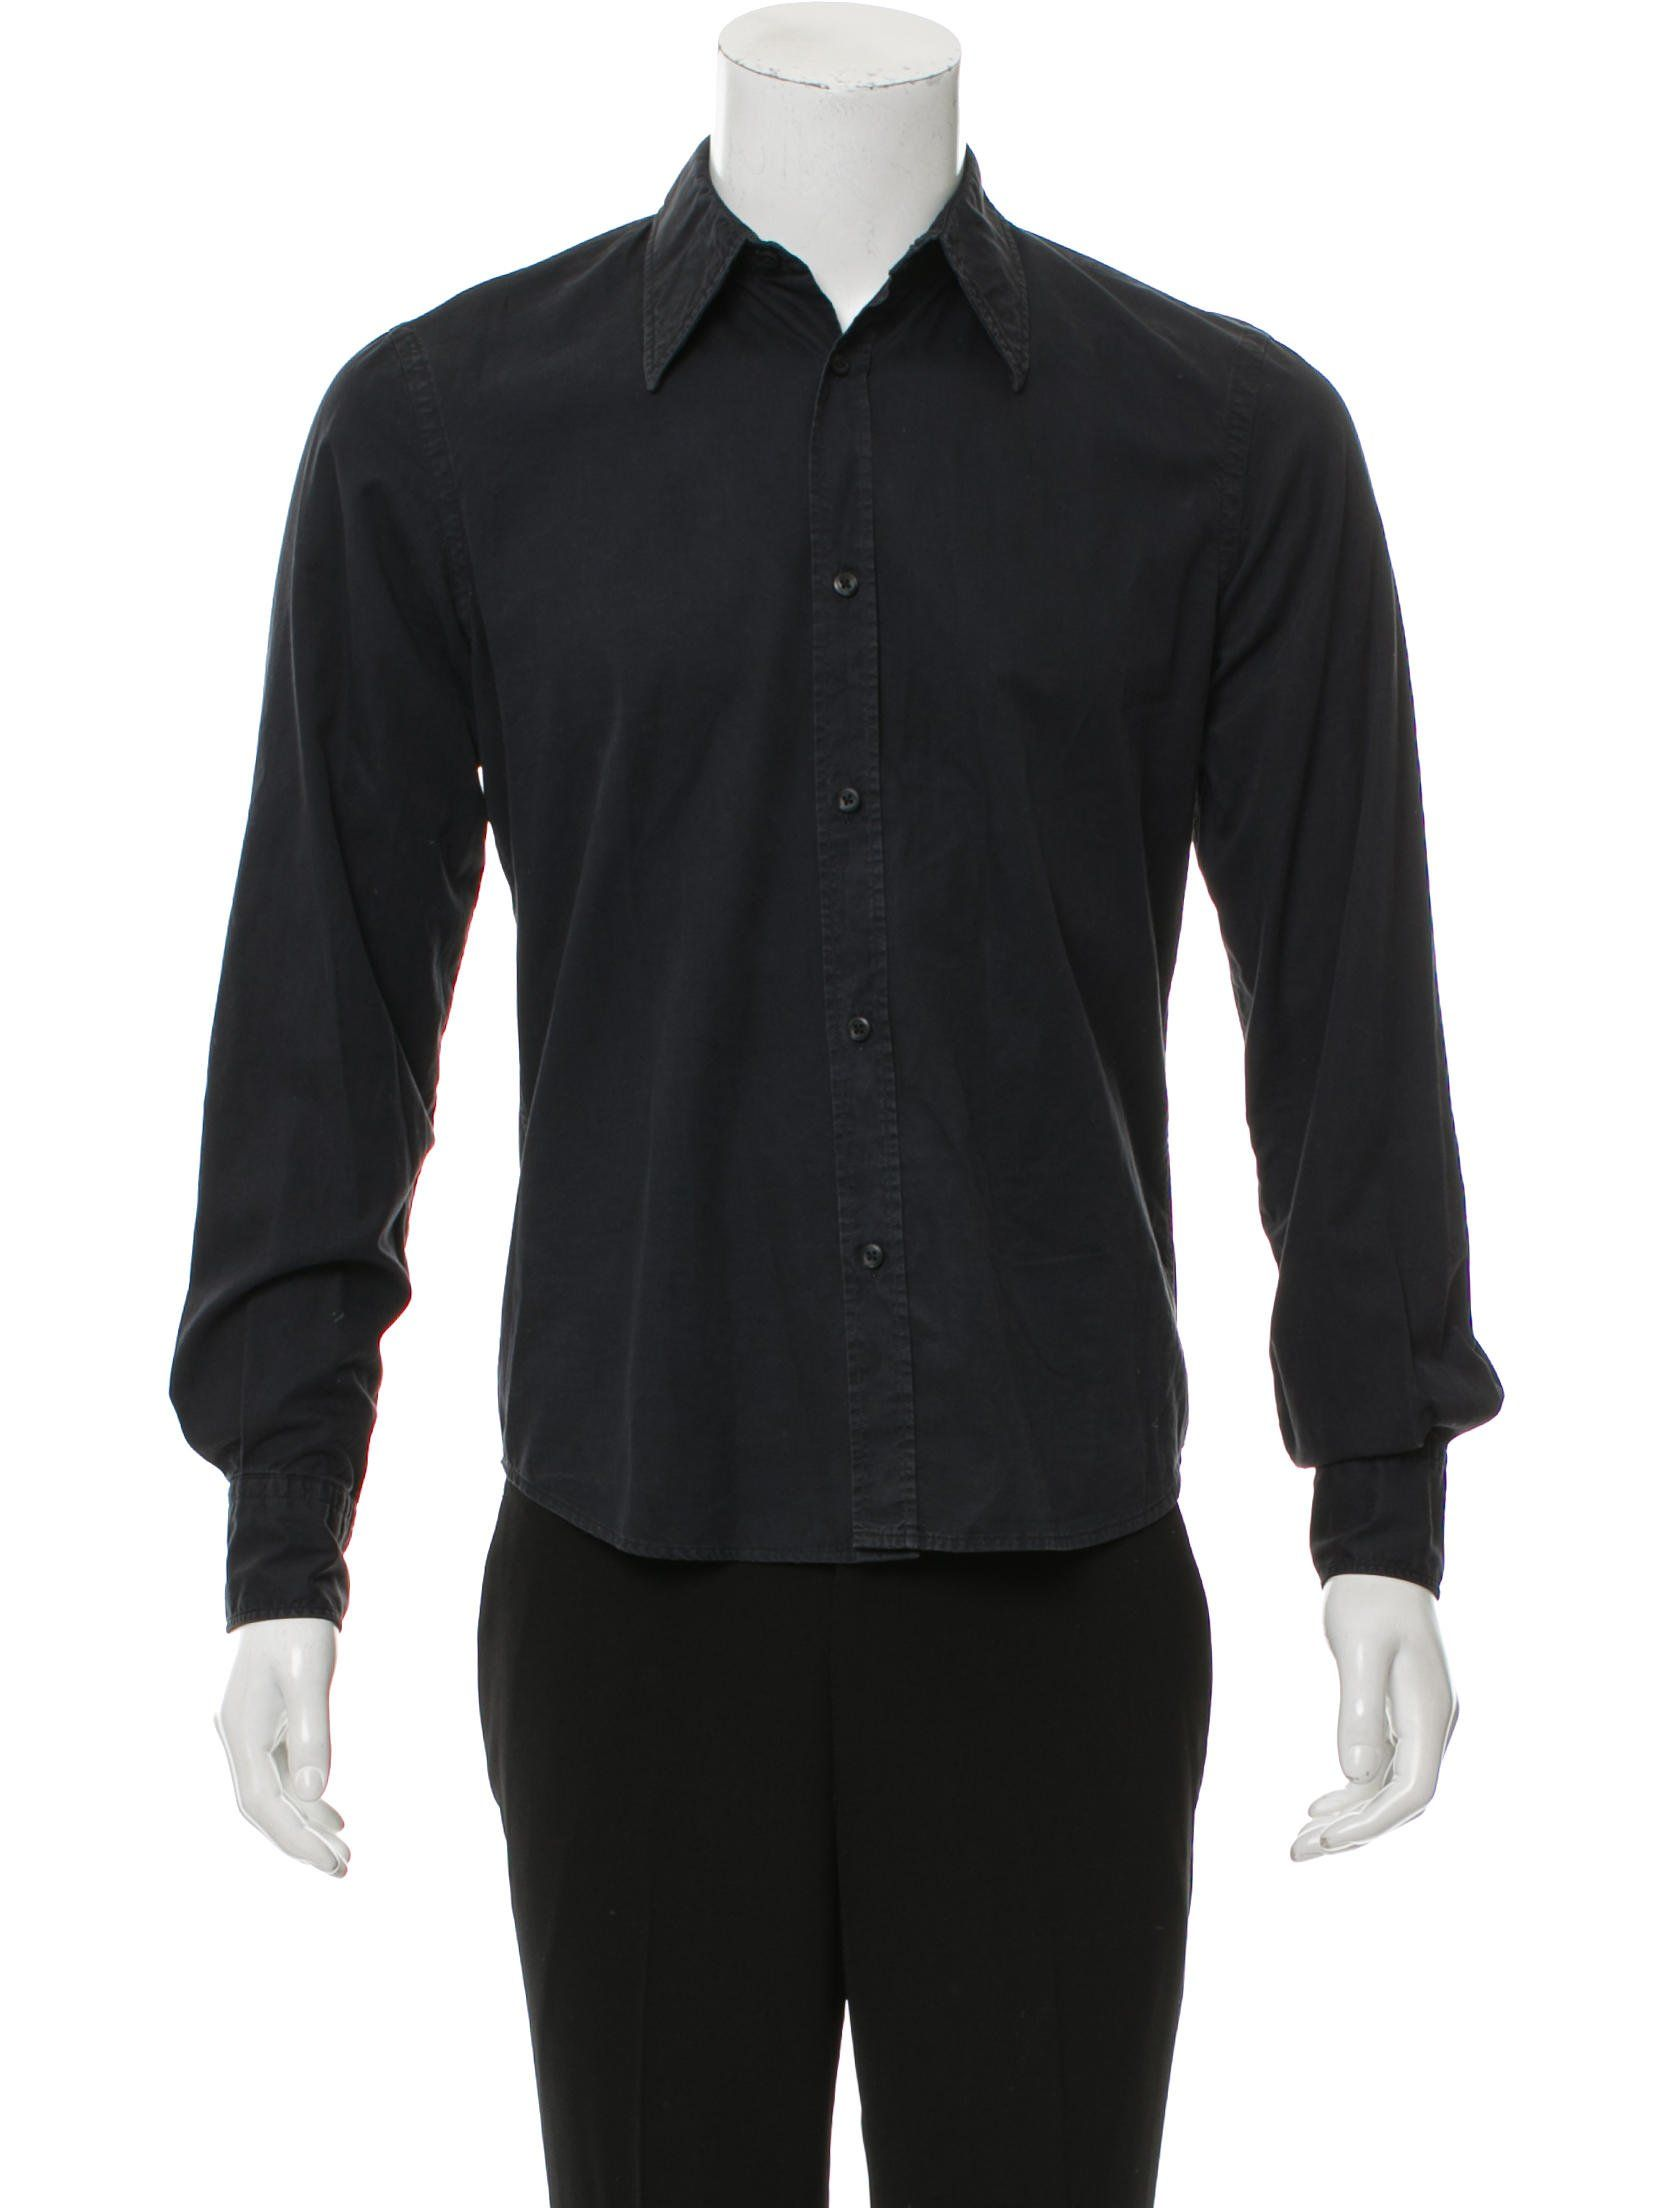 Men S Black Costume National Woven Shirt With Button Closures At Front And Cuffs Shirts Casual Shirts Button Up Shirts [ 2208 x 1674 Pixel ]